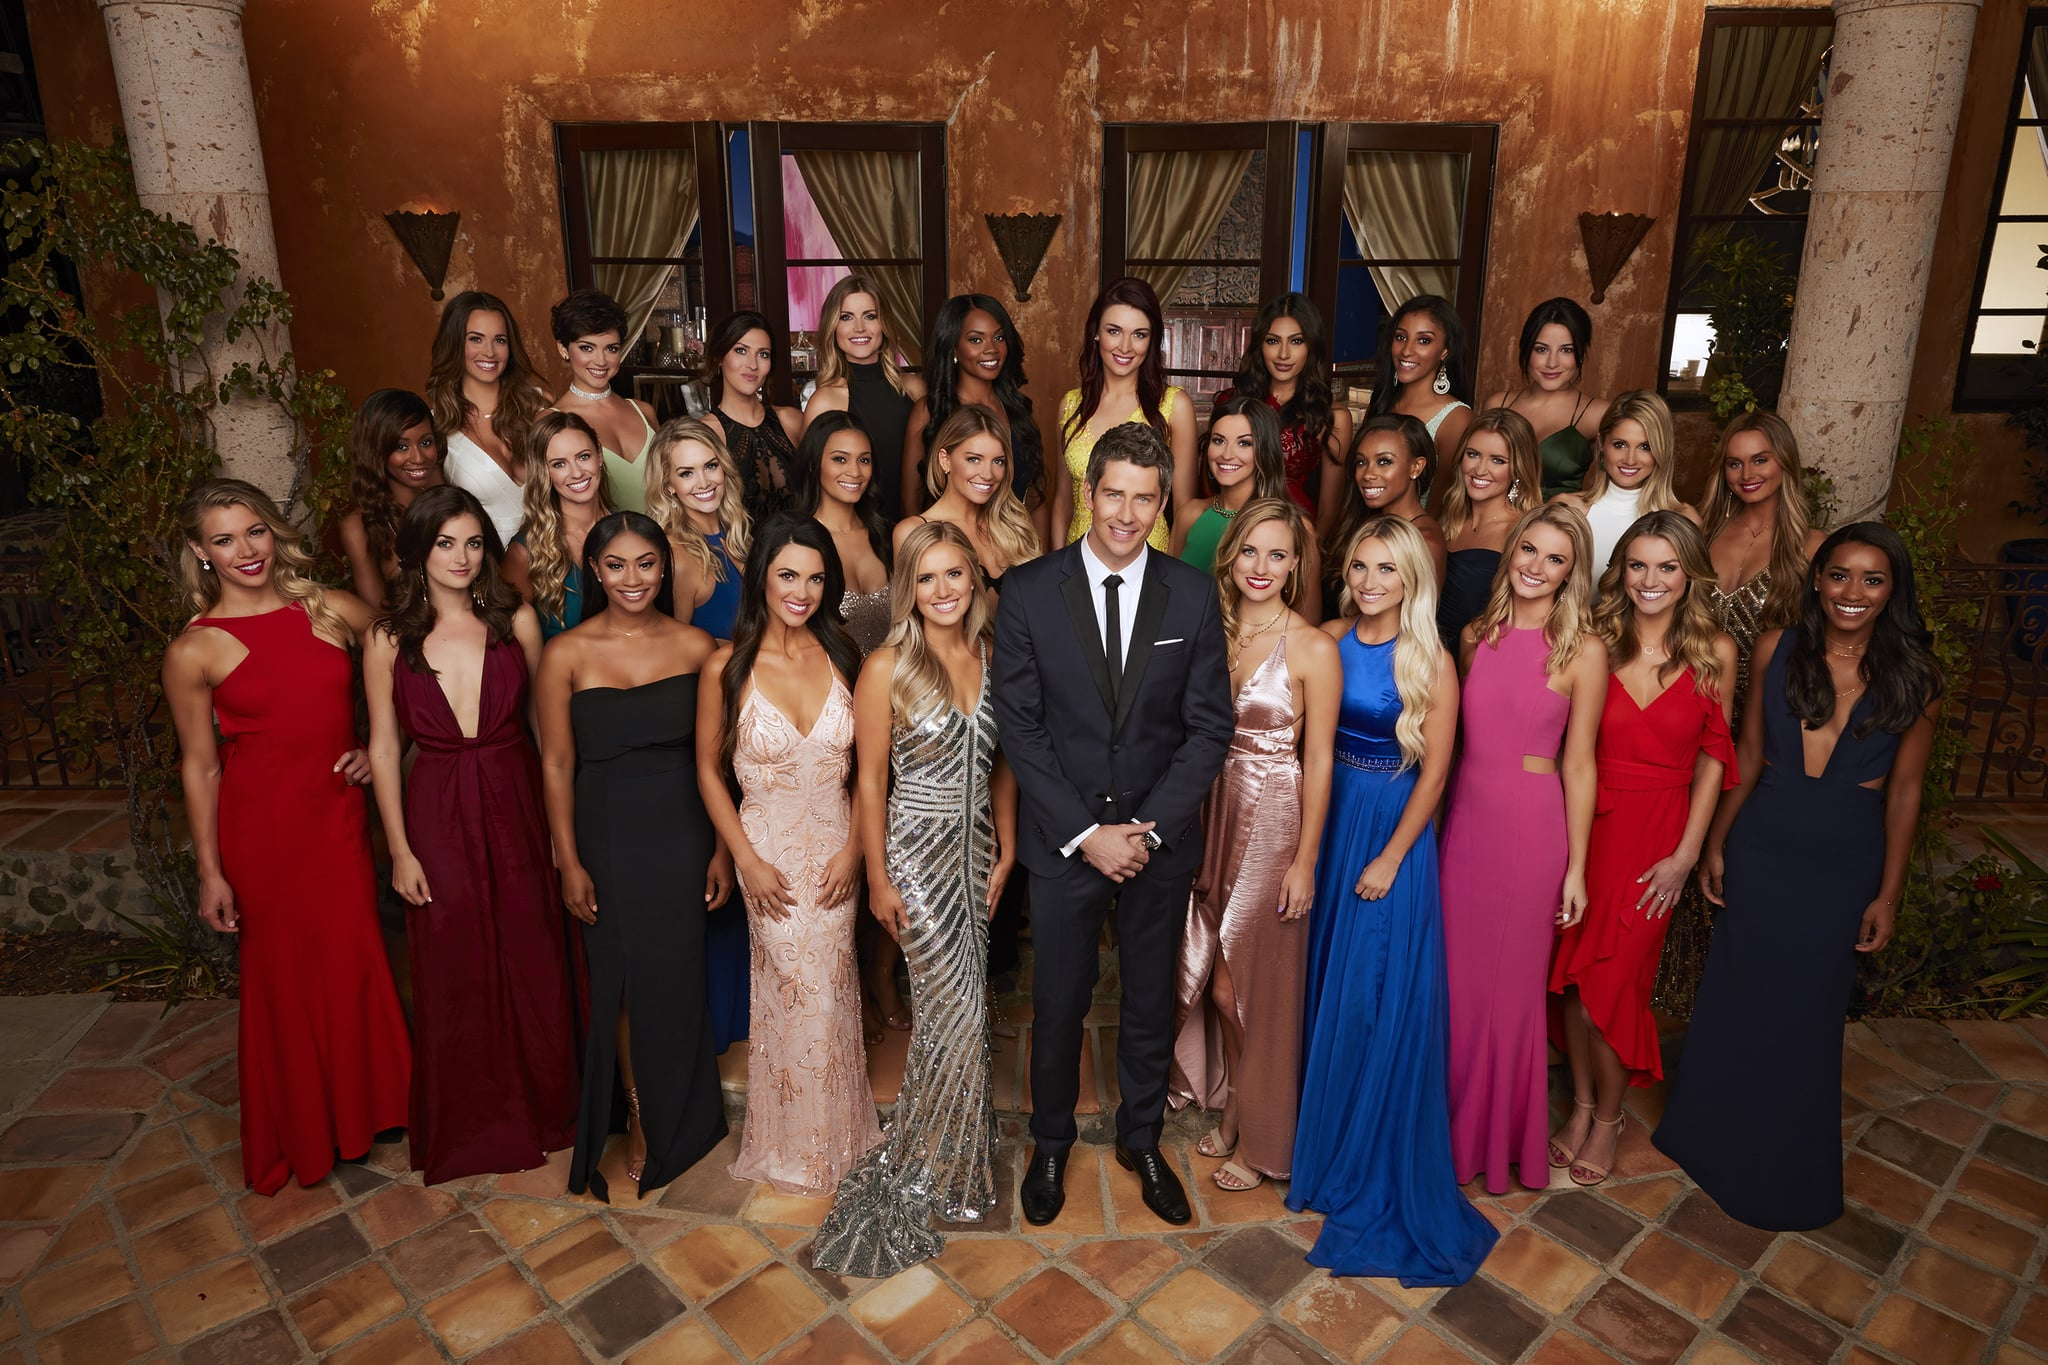 'Bachelor' Contestant Explains Why Mother Reported Her as 'Missing'